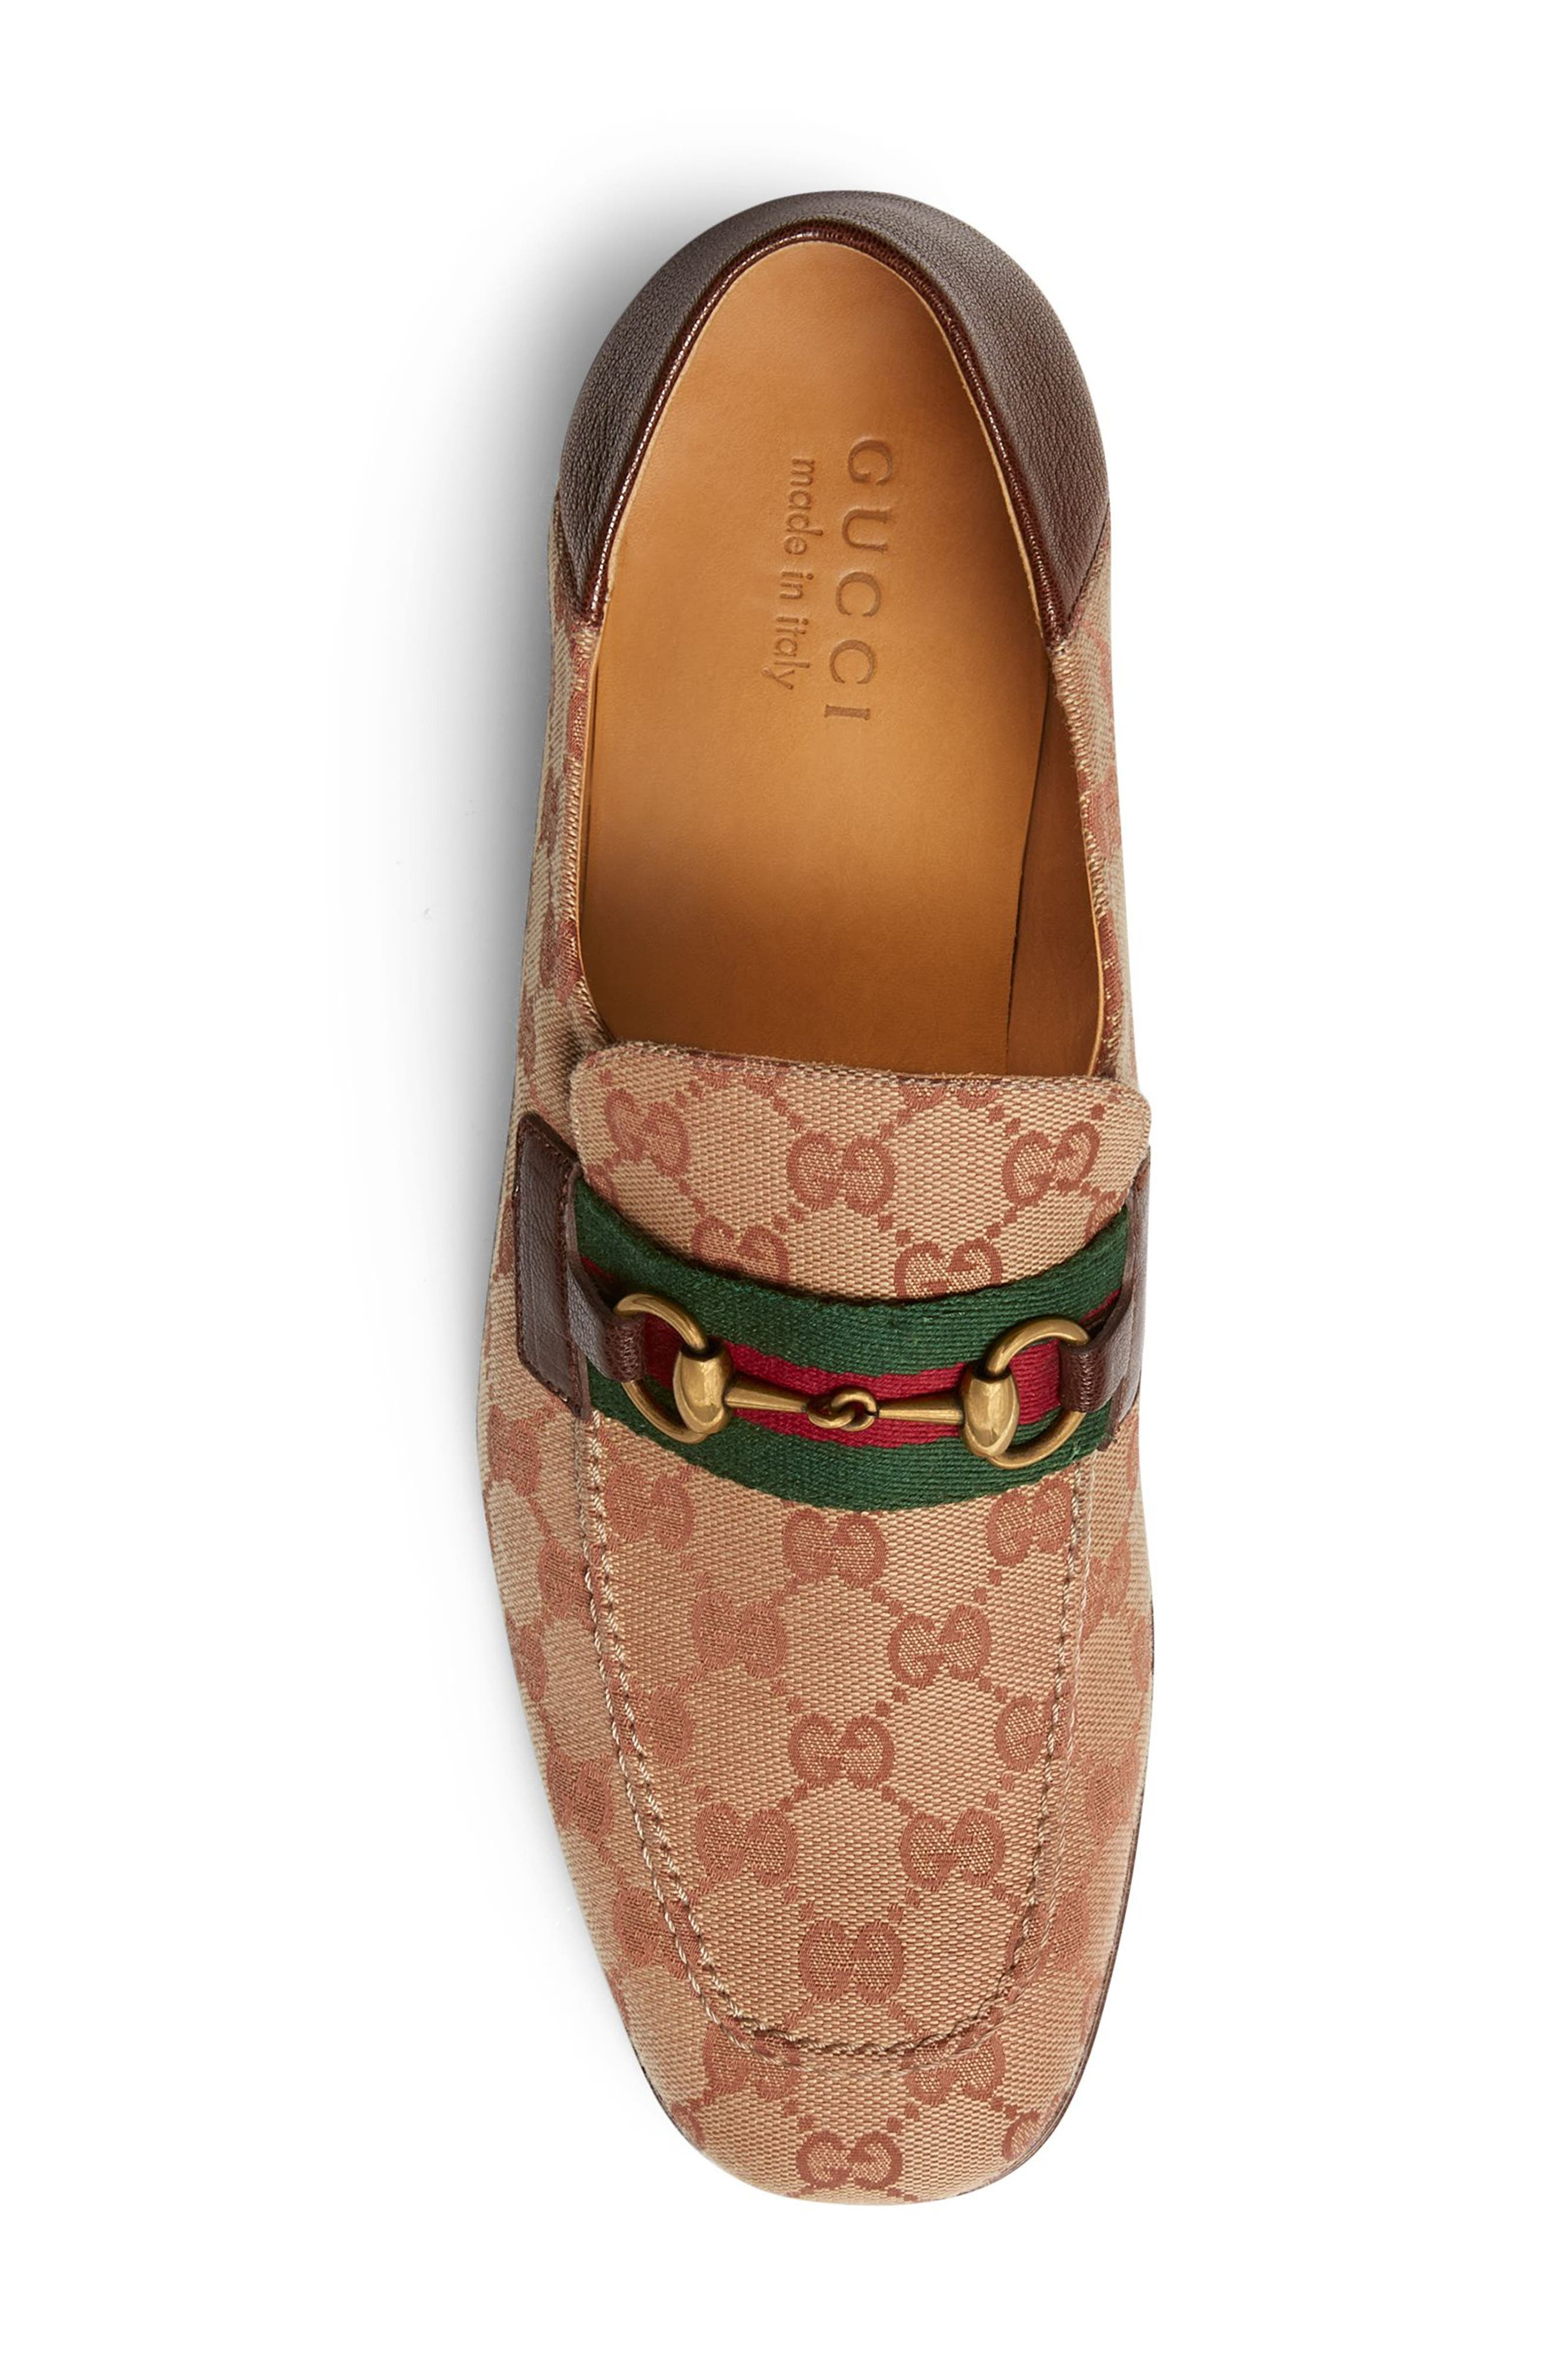 GUCCI,                             Horsebit Collapsible Leather Loafer,                             Alternate thumbnail 4, color,                             BEIGE/ ROSE